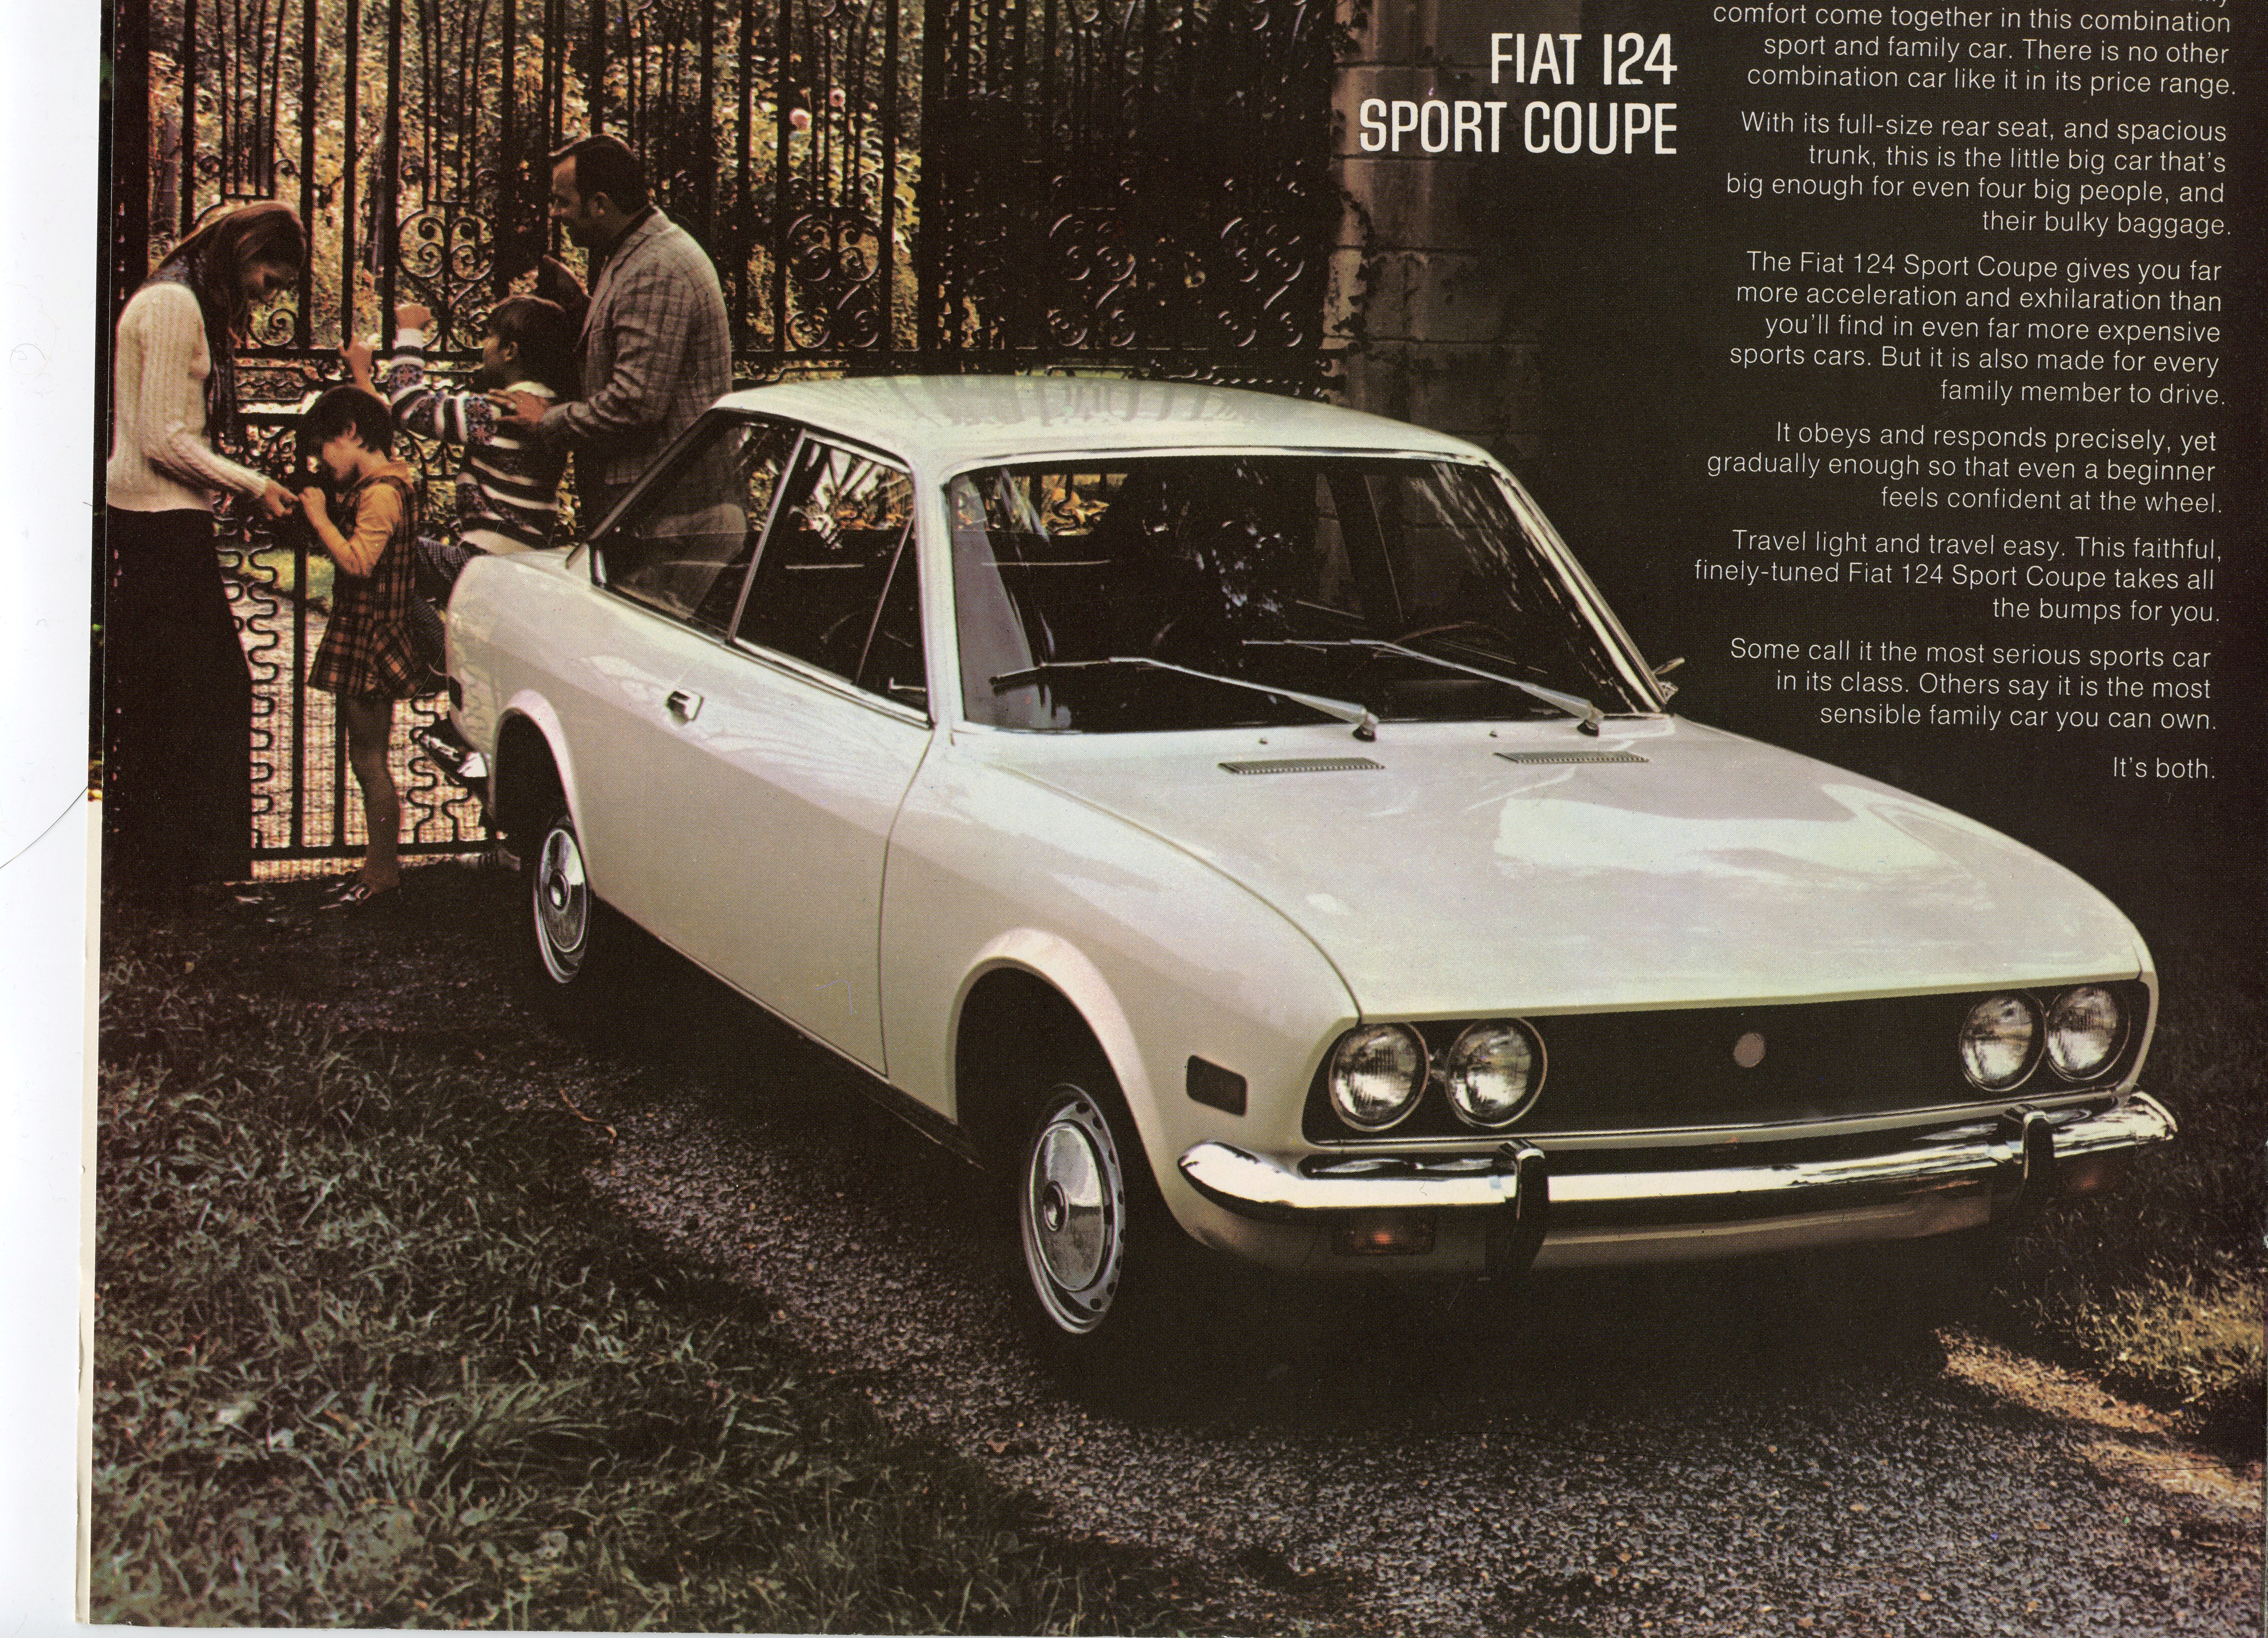 The Fiat 124 Sport Coupe An Abbreviated History Richardscarblog